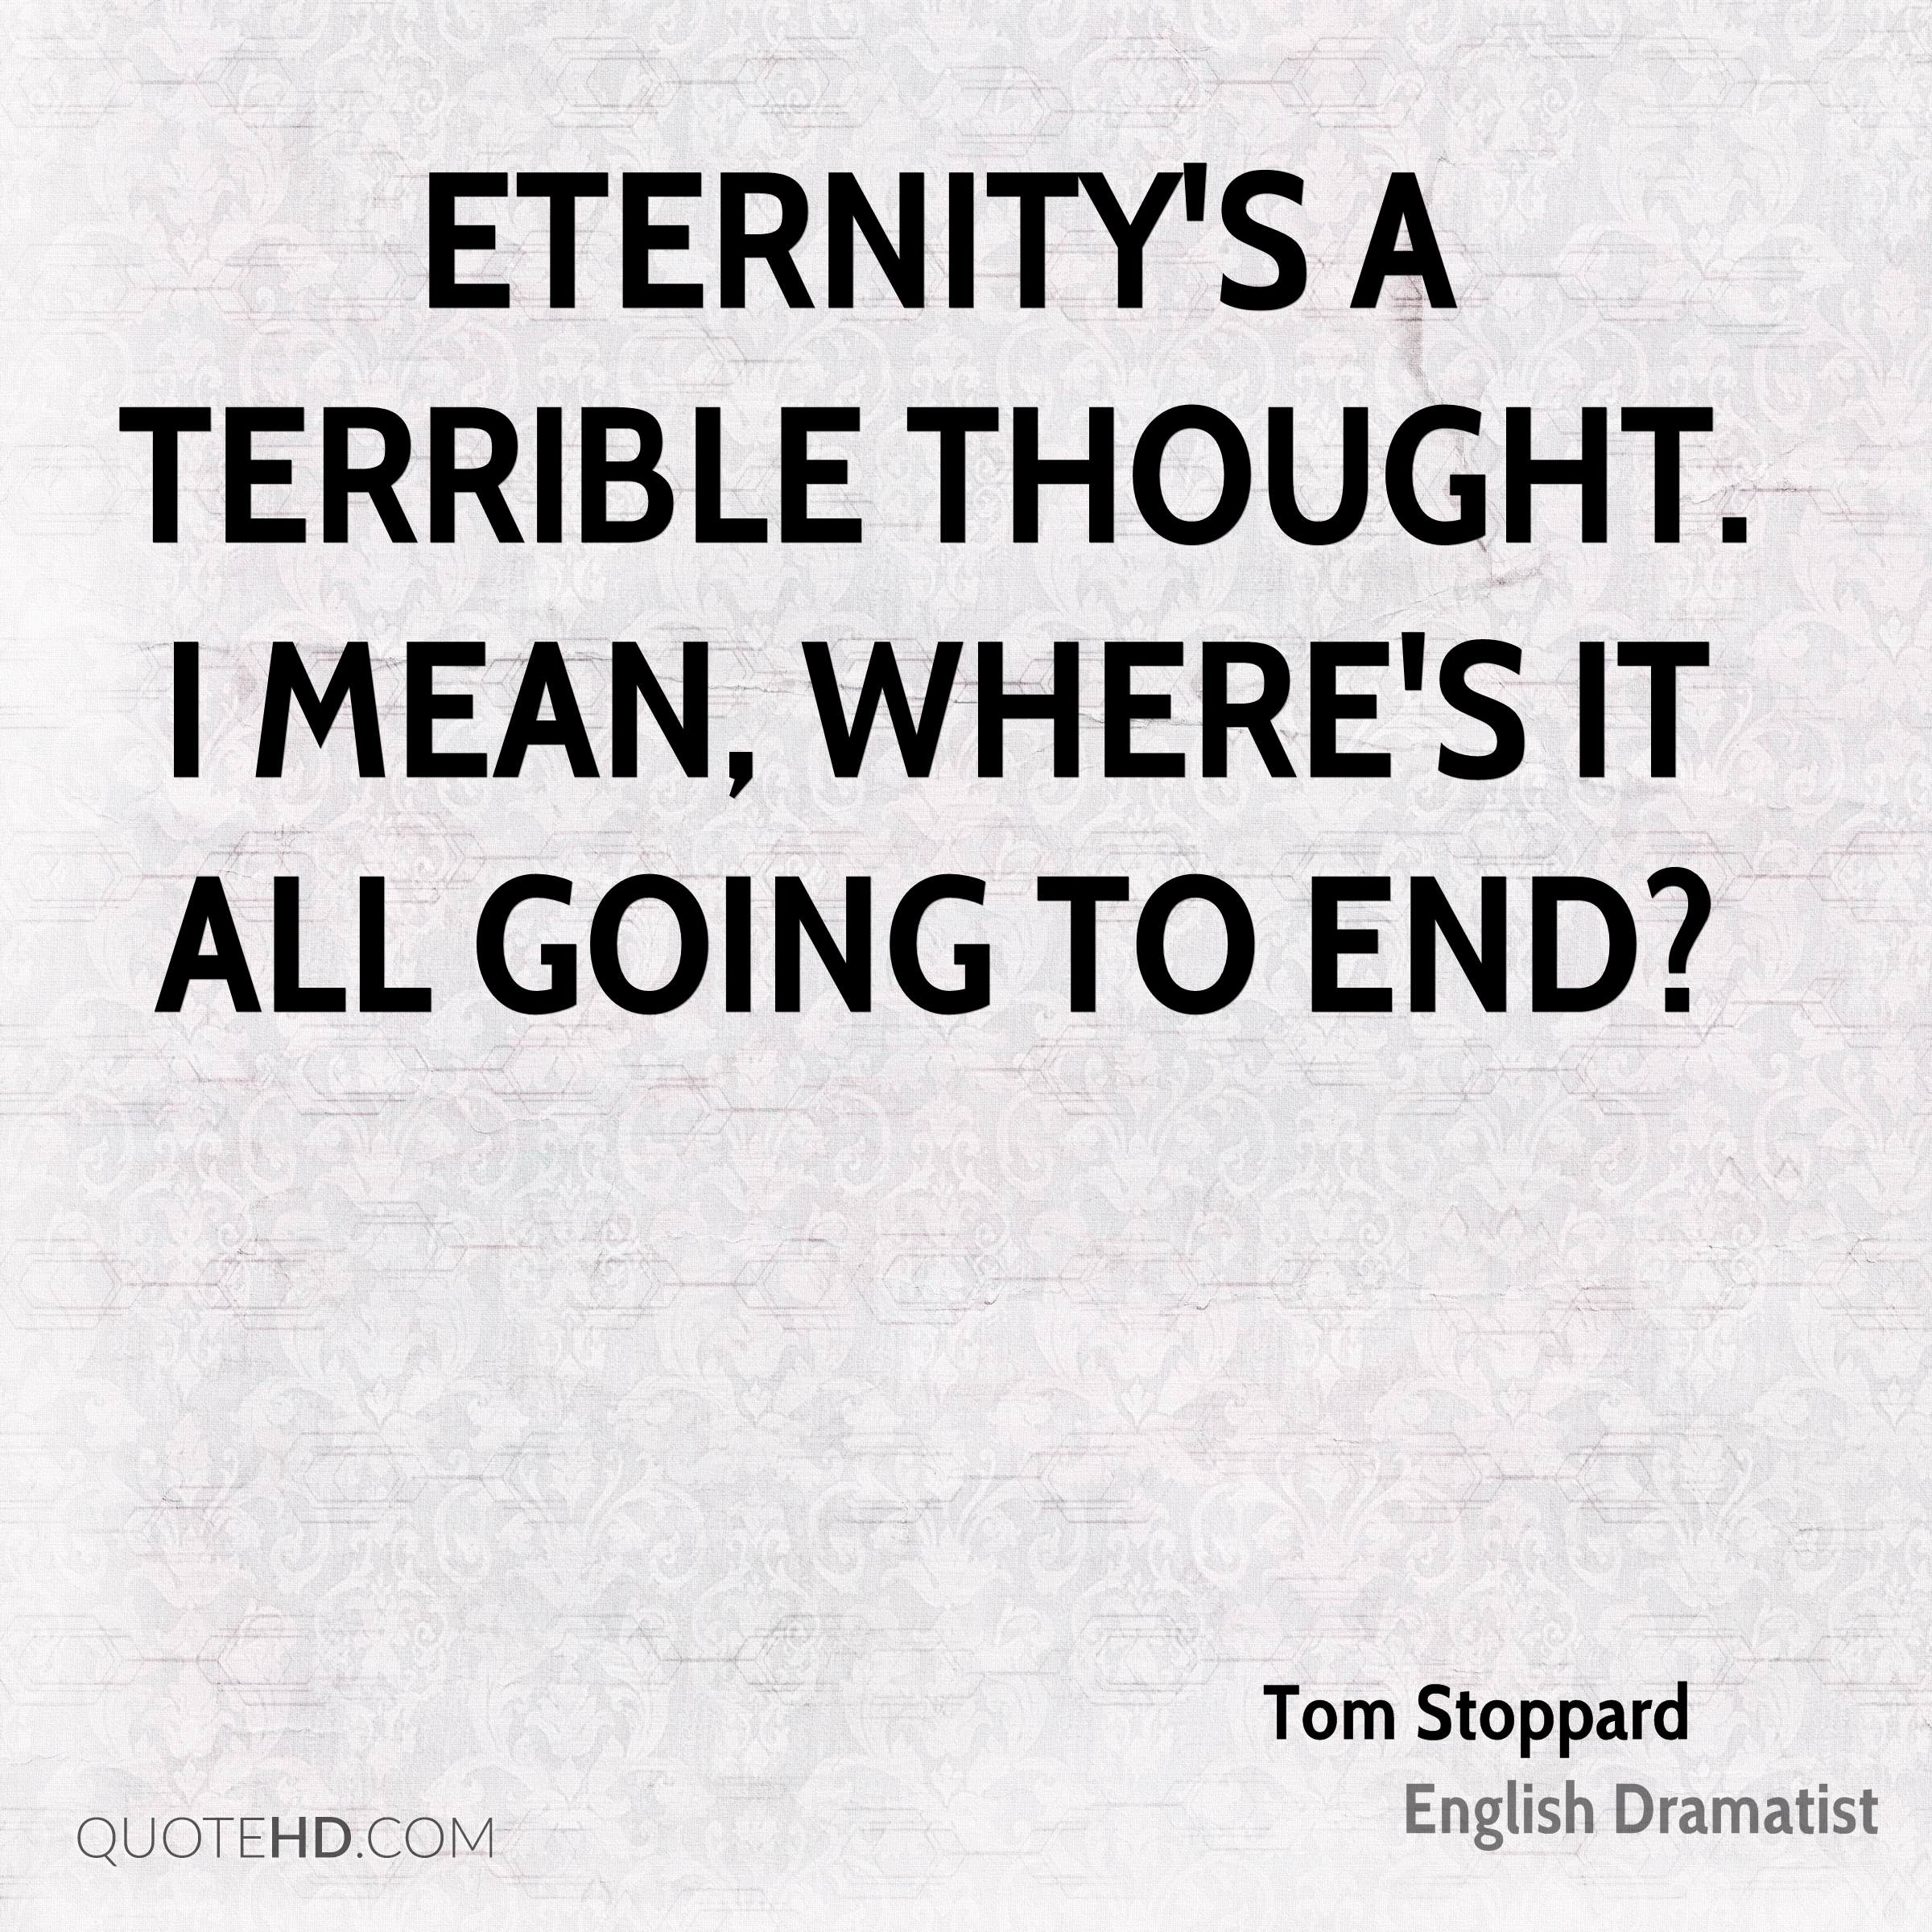 Eternity's a terrible thought. I mean, where's it all going to end?